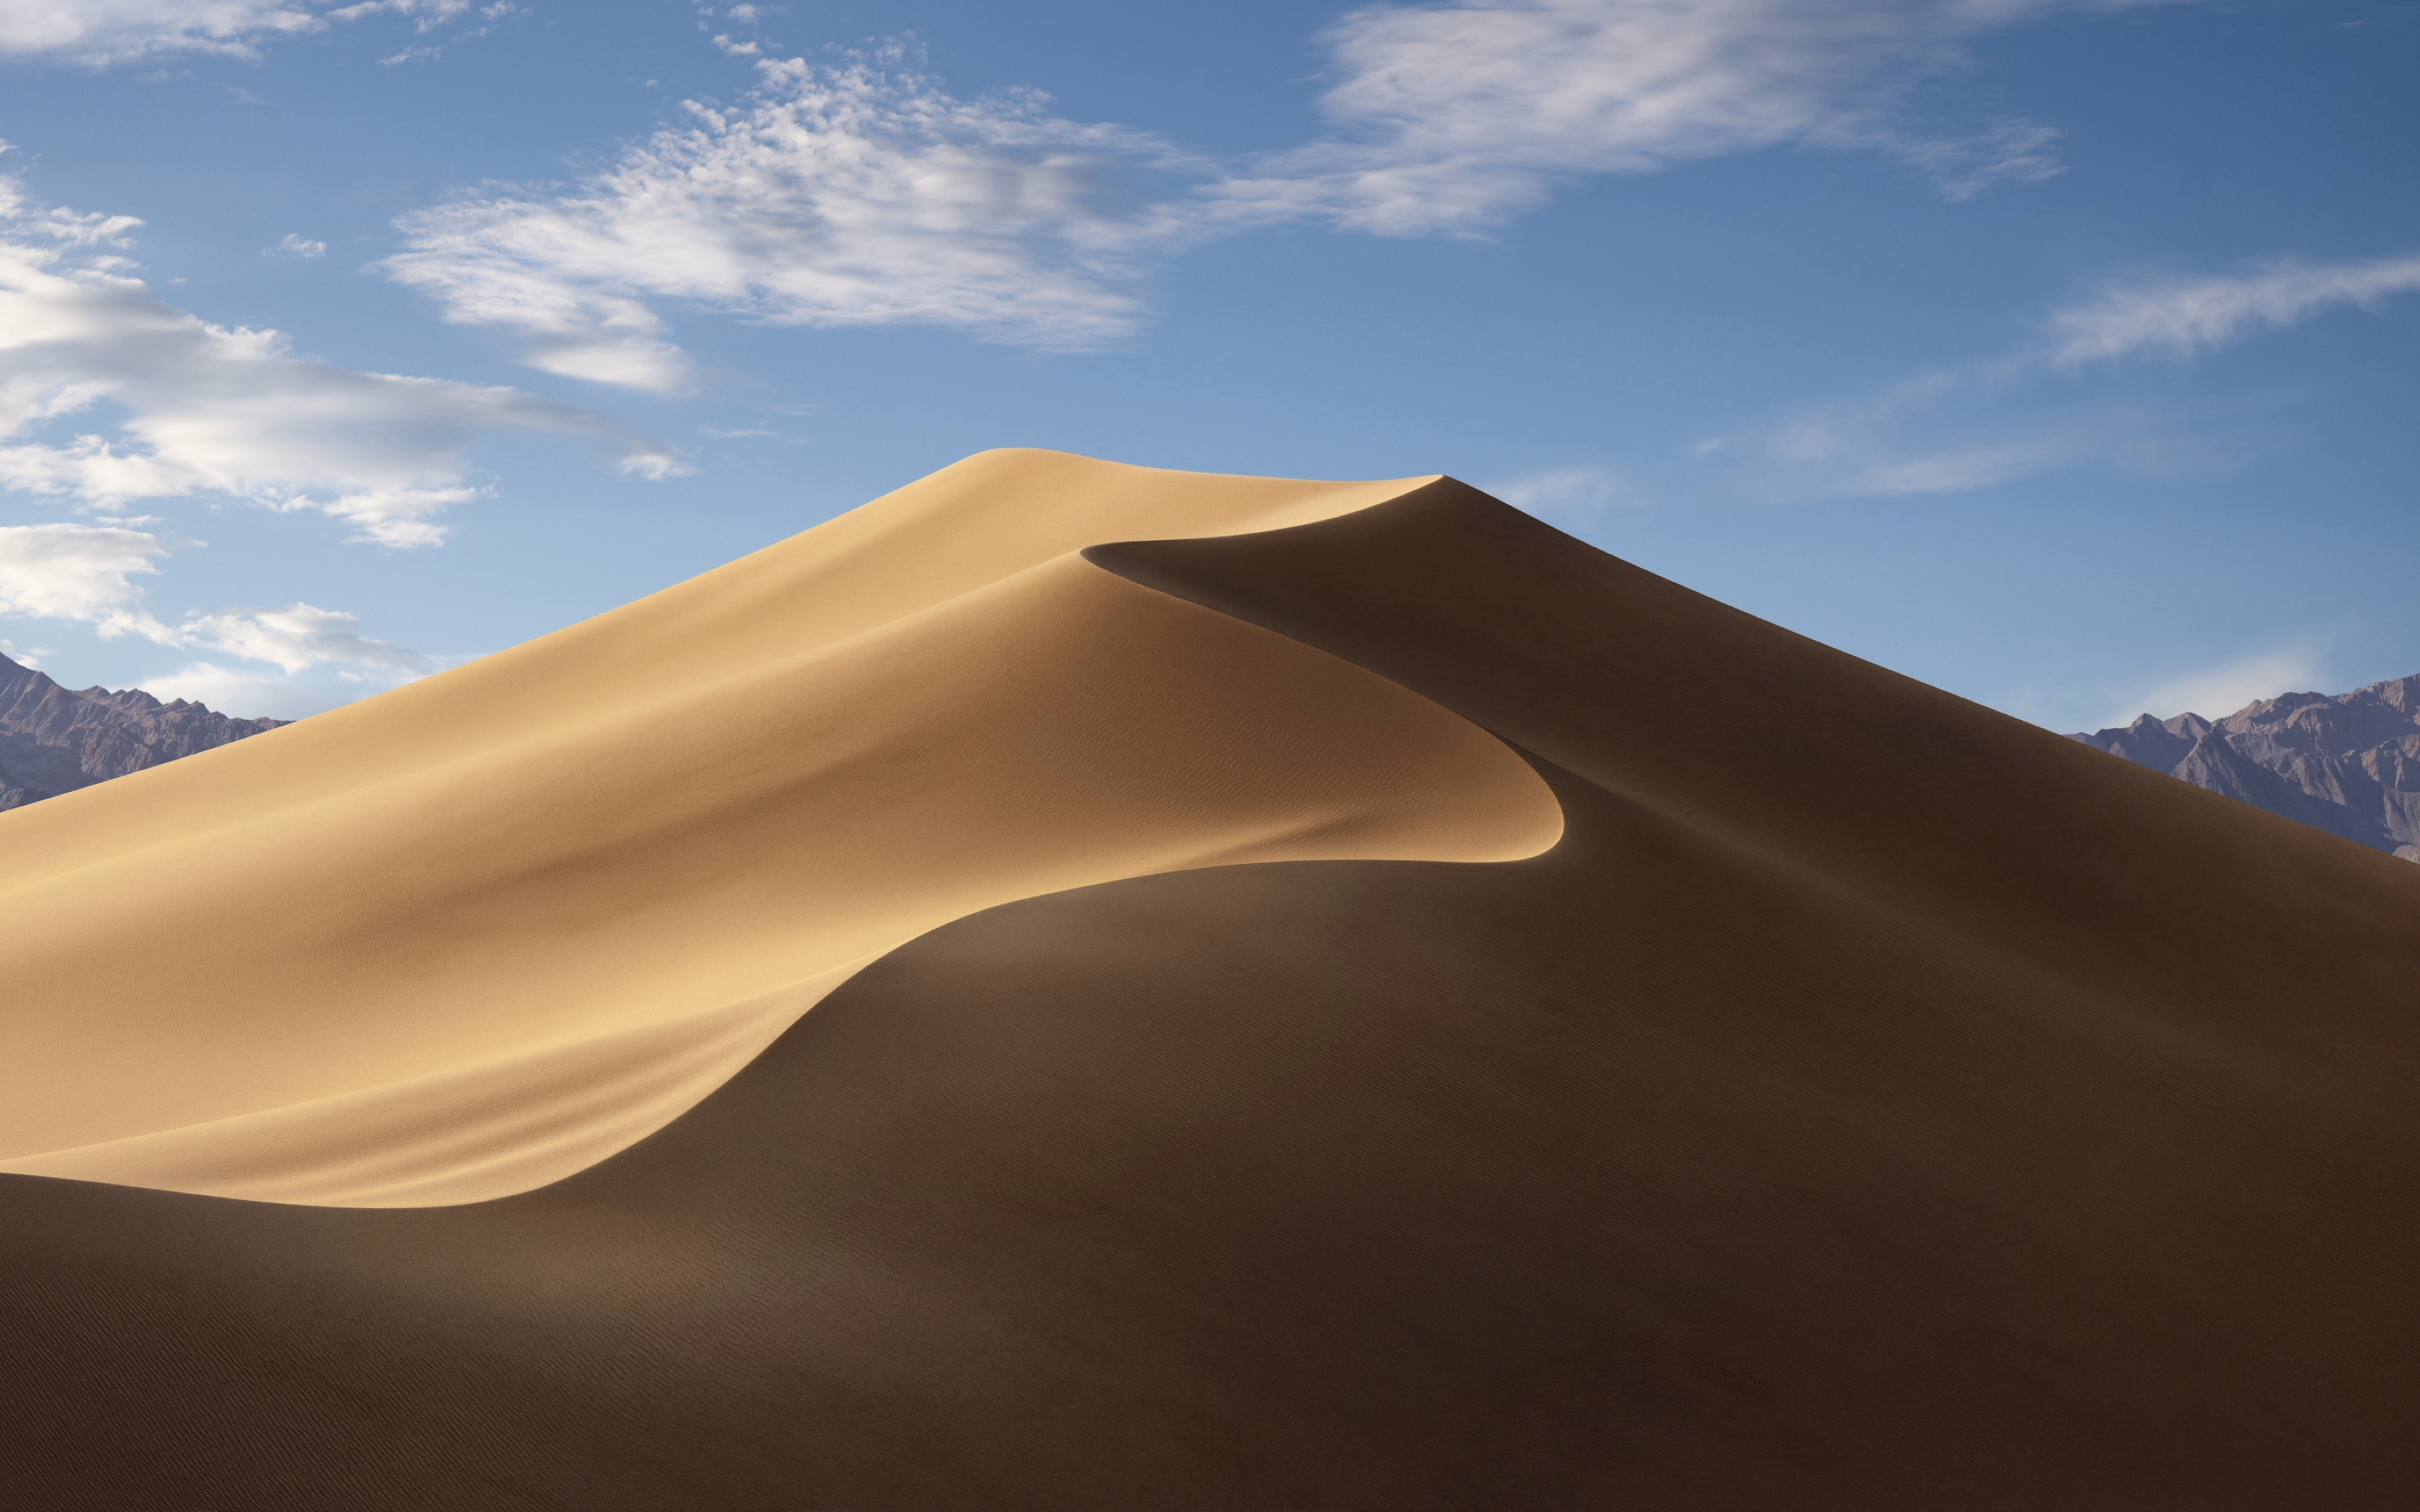 macos mojave wallpapers for download in hd